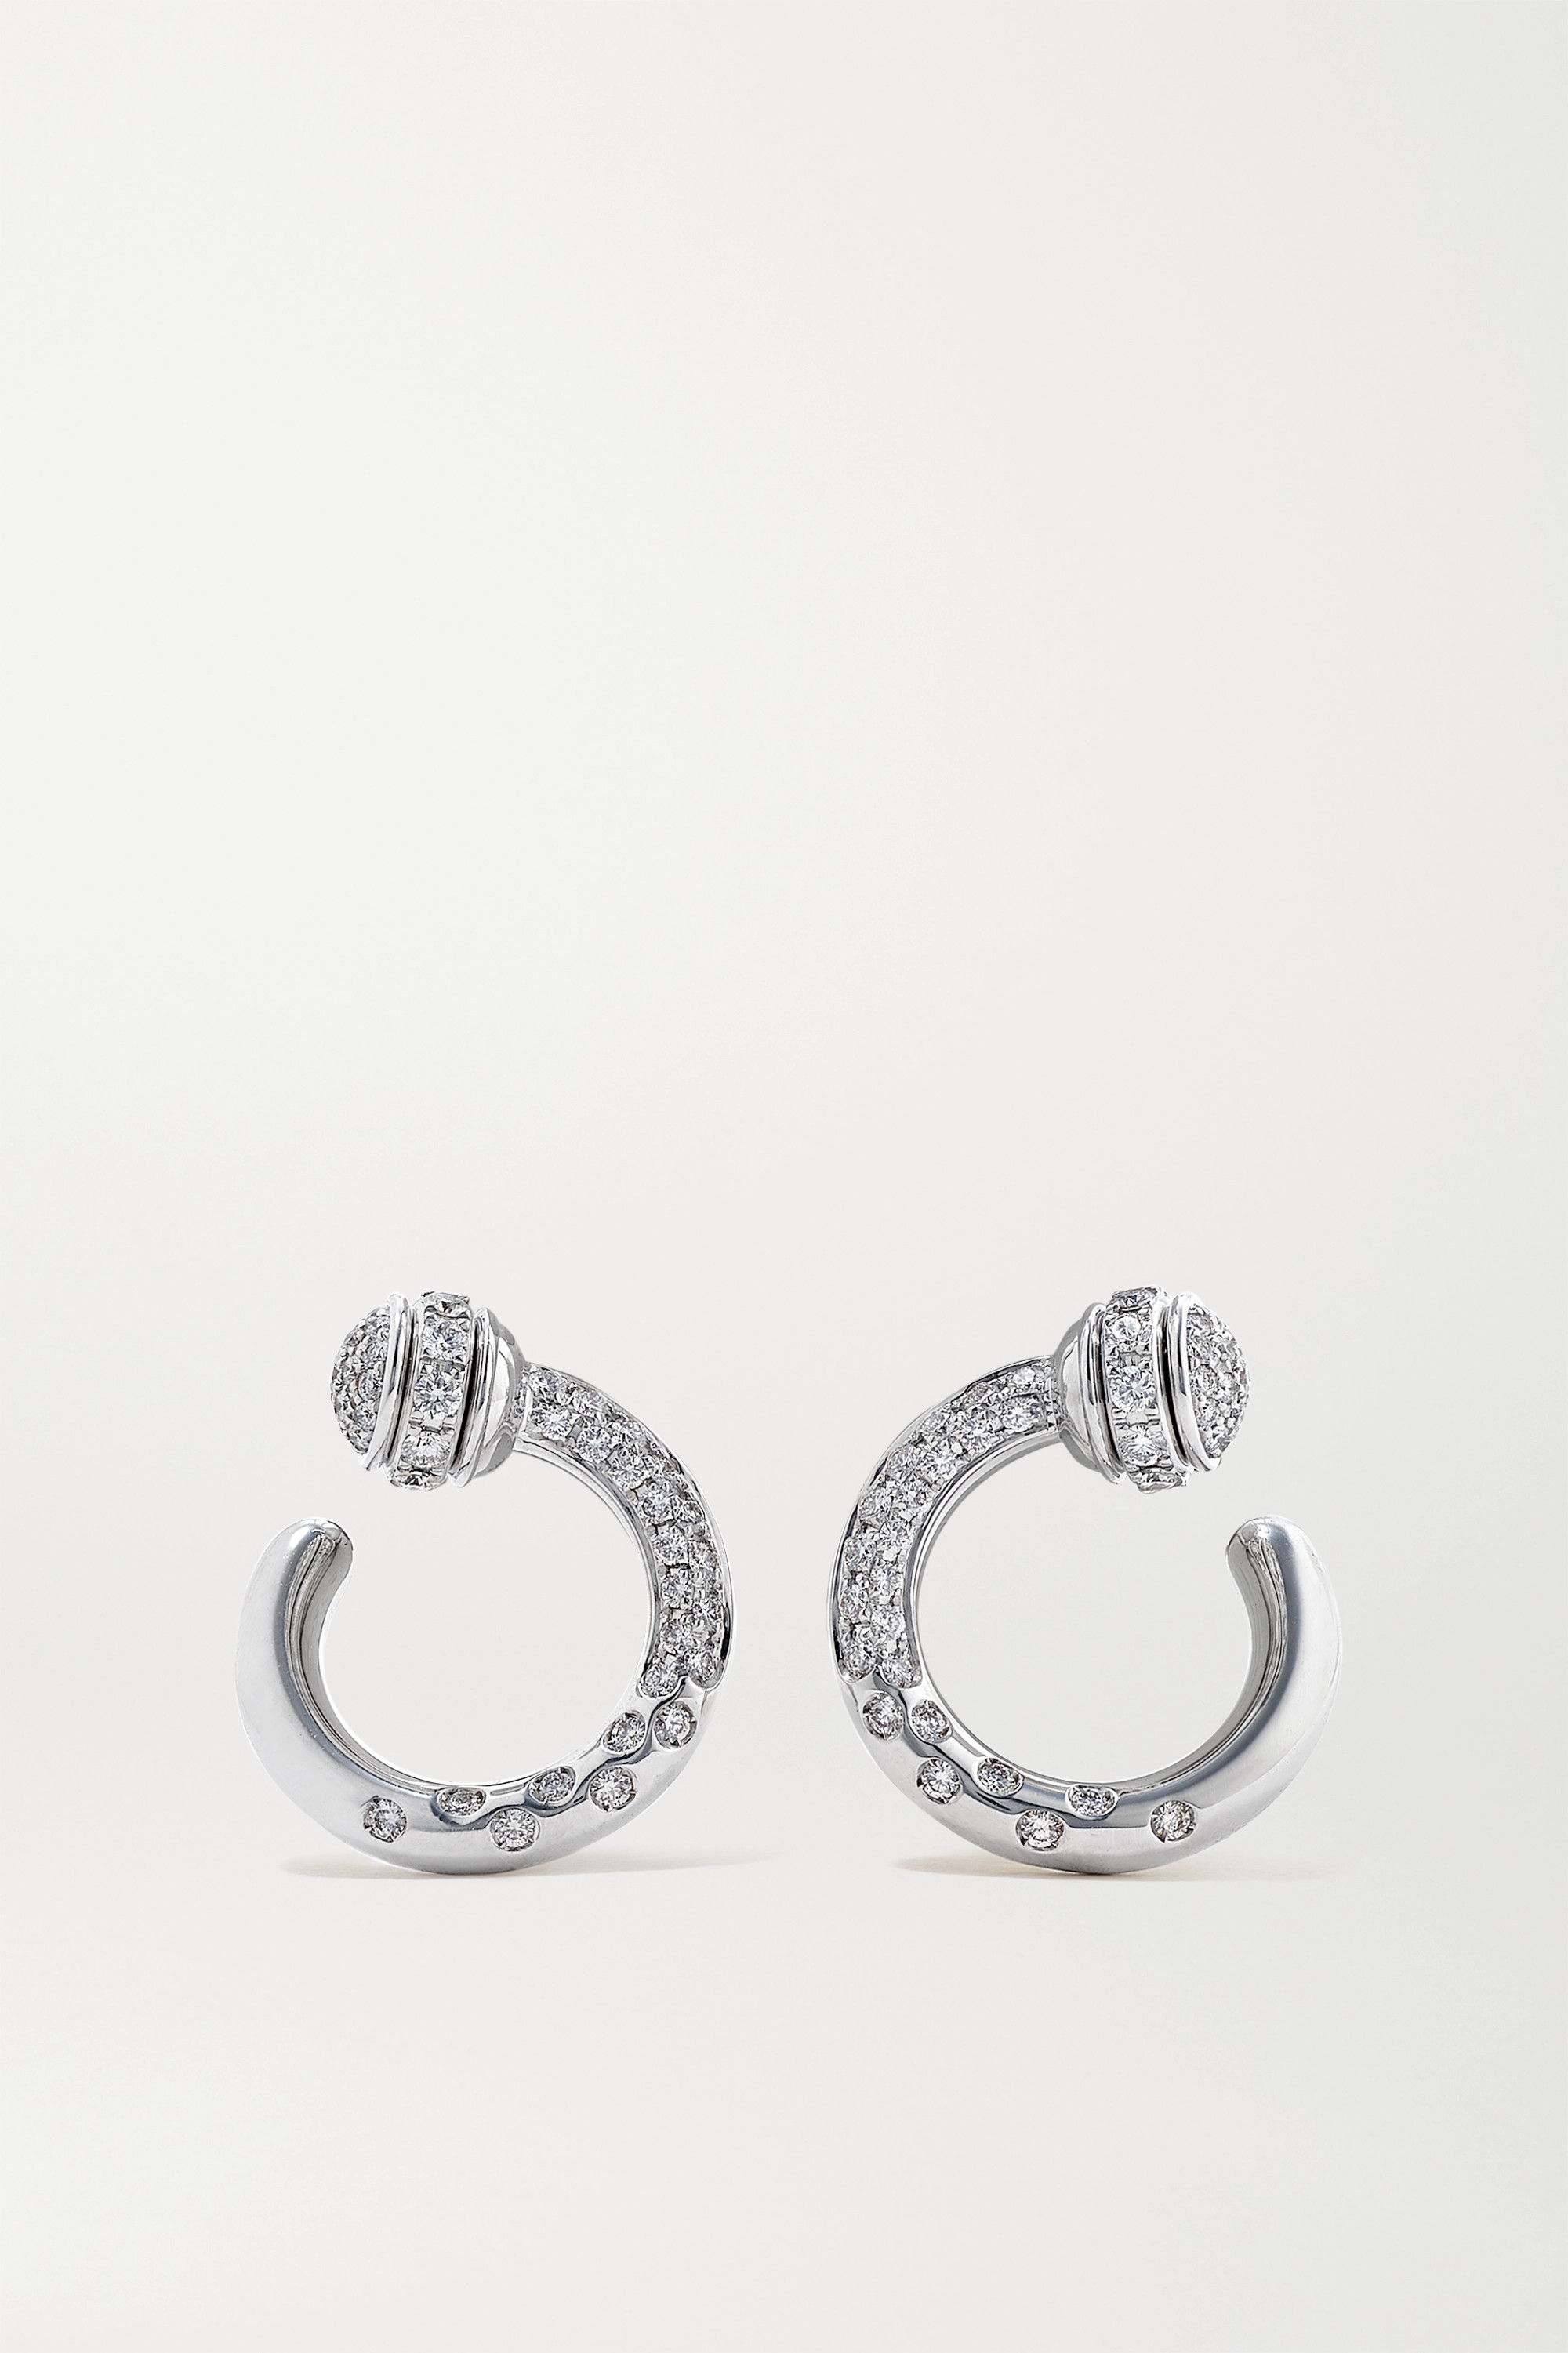 Piaget Boucles d'oreilles en or blanc 18 carats et diamants Possession